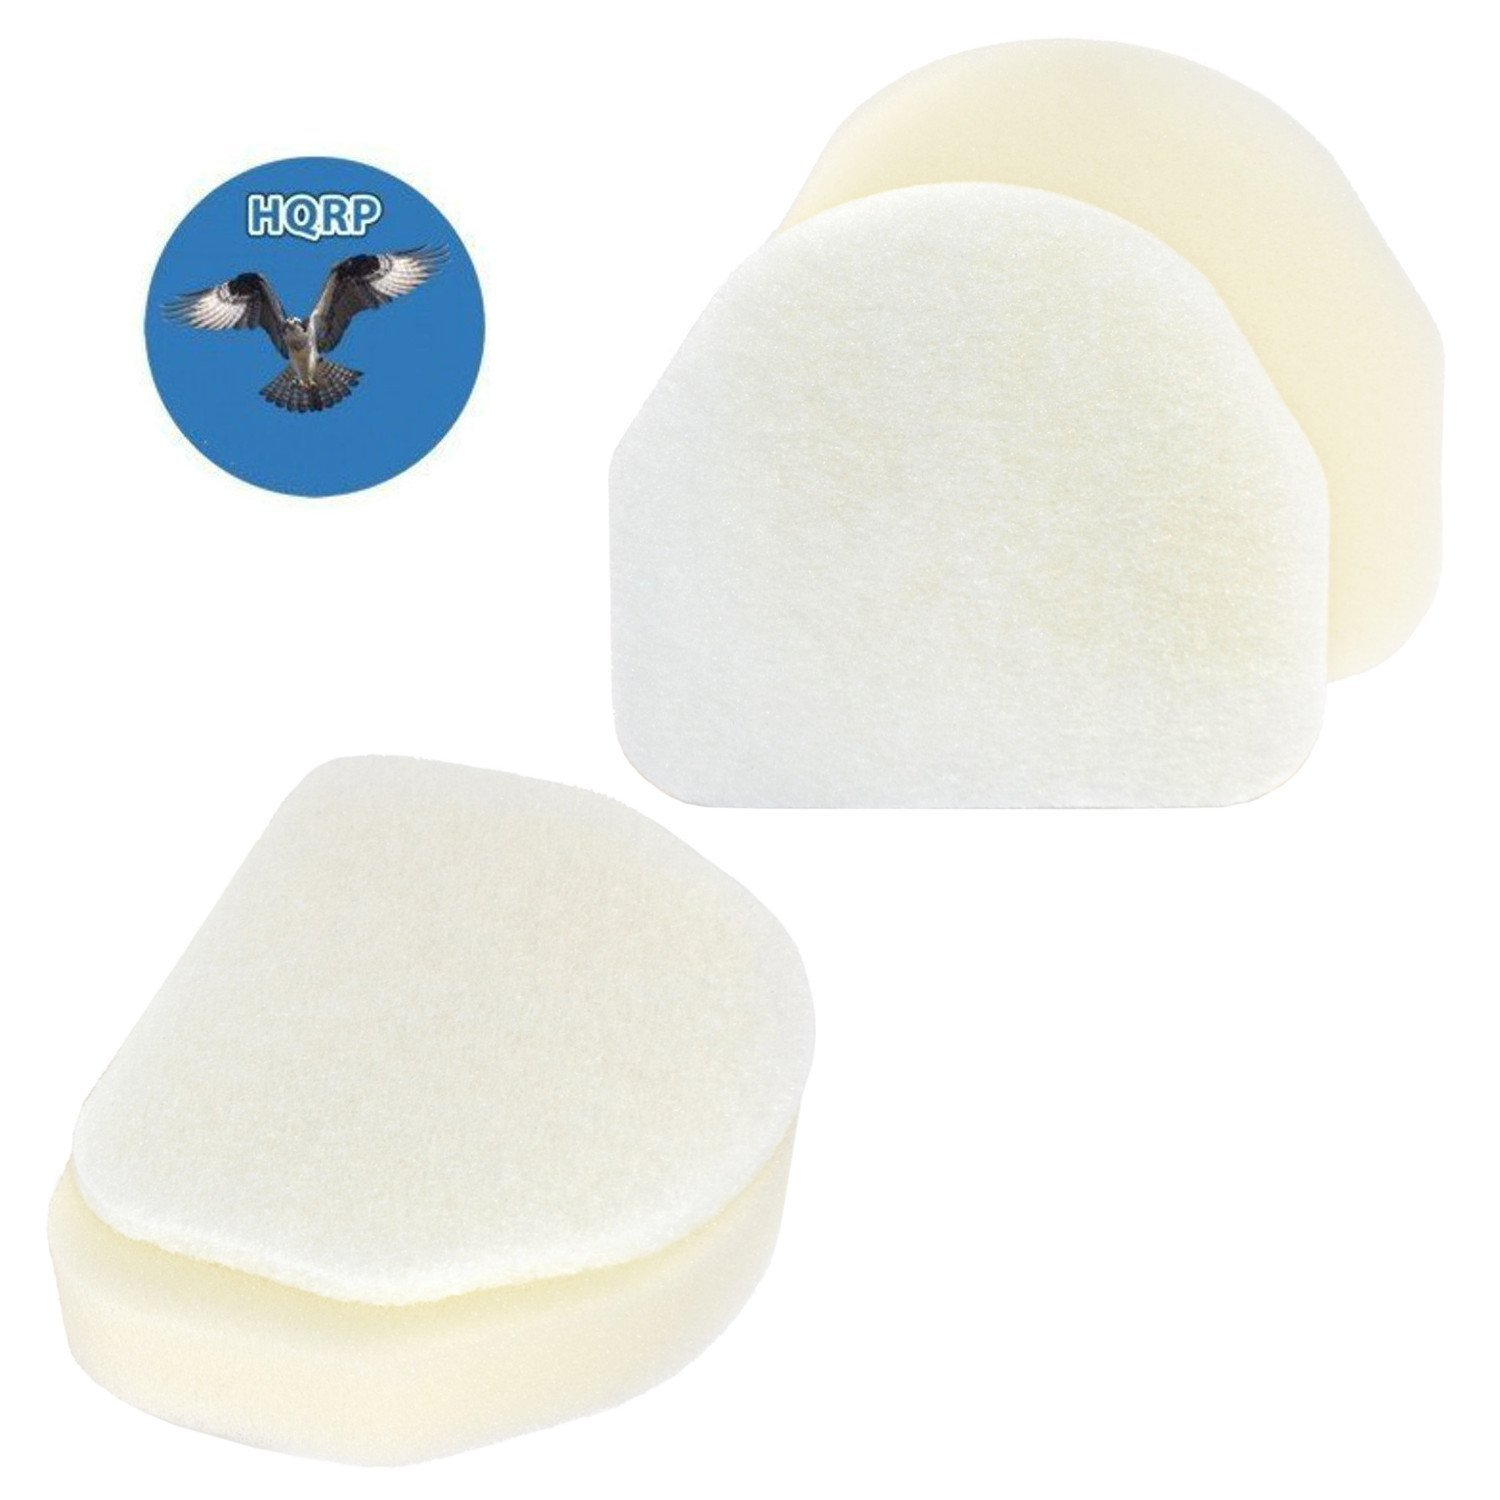 Hqrp 2 Pack Foam Amp Felt Filter Kit For Shark Nv201 Nv202